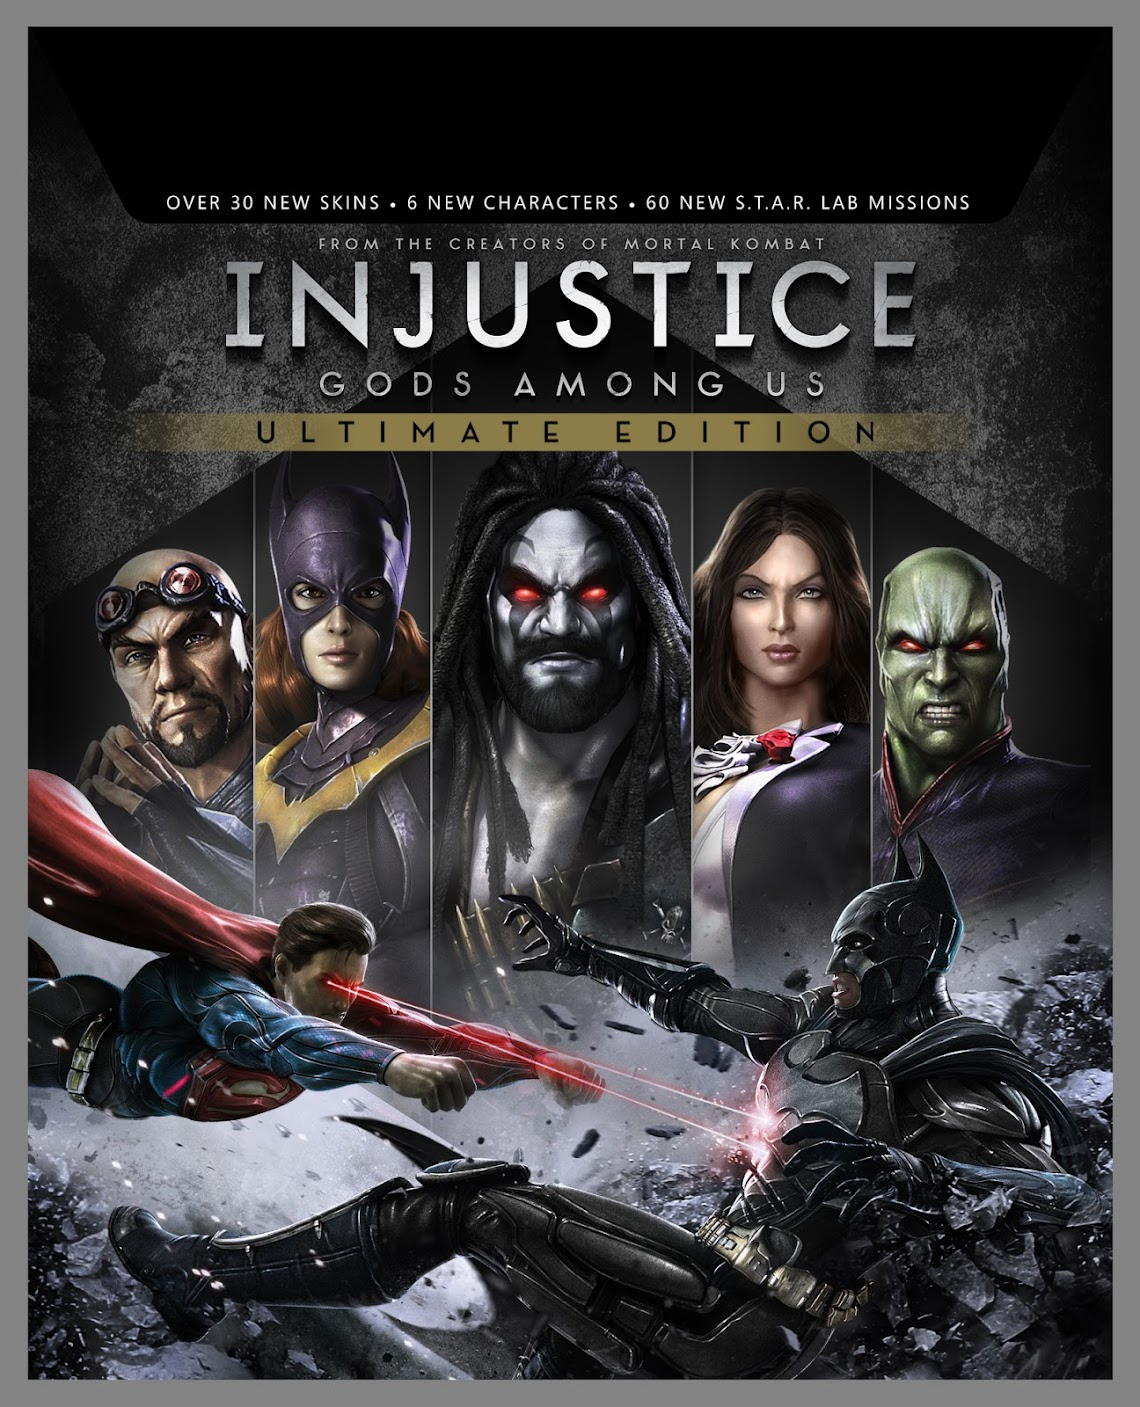 Injustice: Gods Among Us Ultimate Edition announced for PS4 not Xbox One